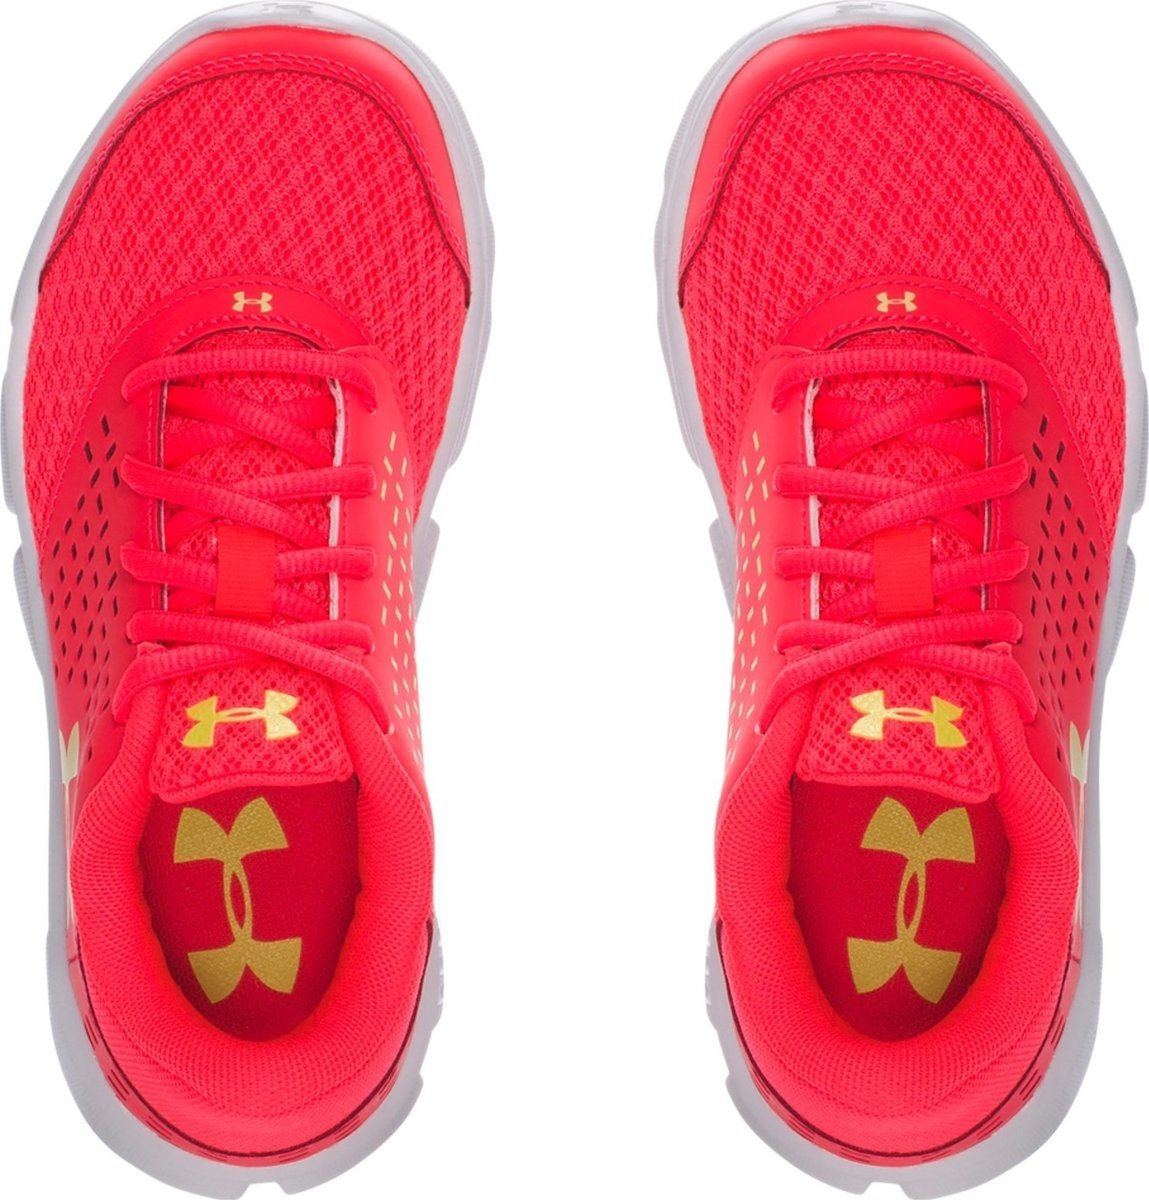 Under Armour GPS Rave RN 1285437-297 - Skroutz.gr 13402177d0f